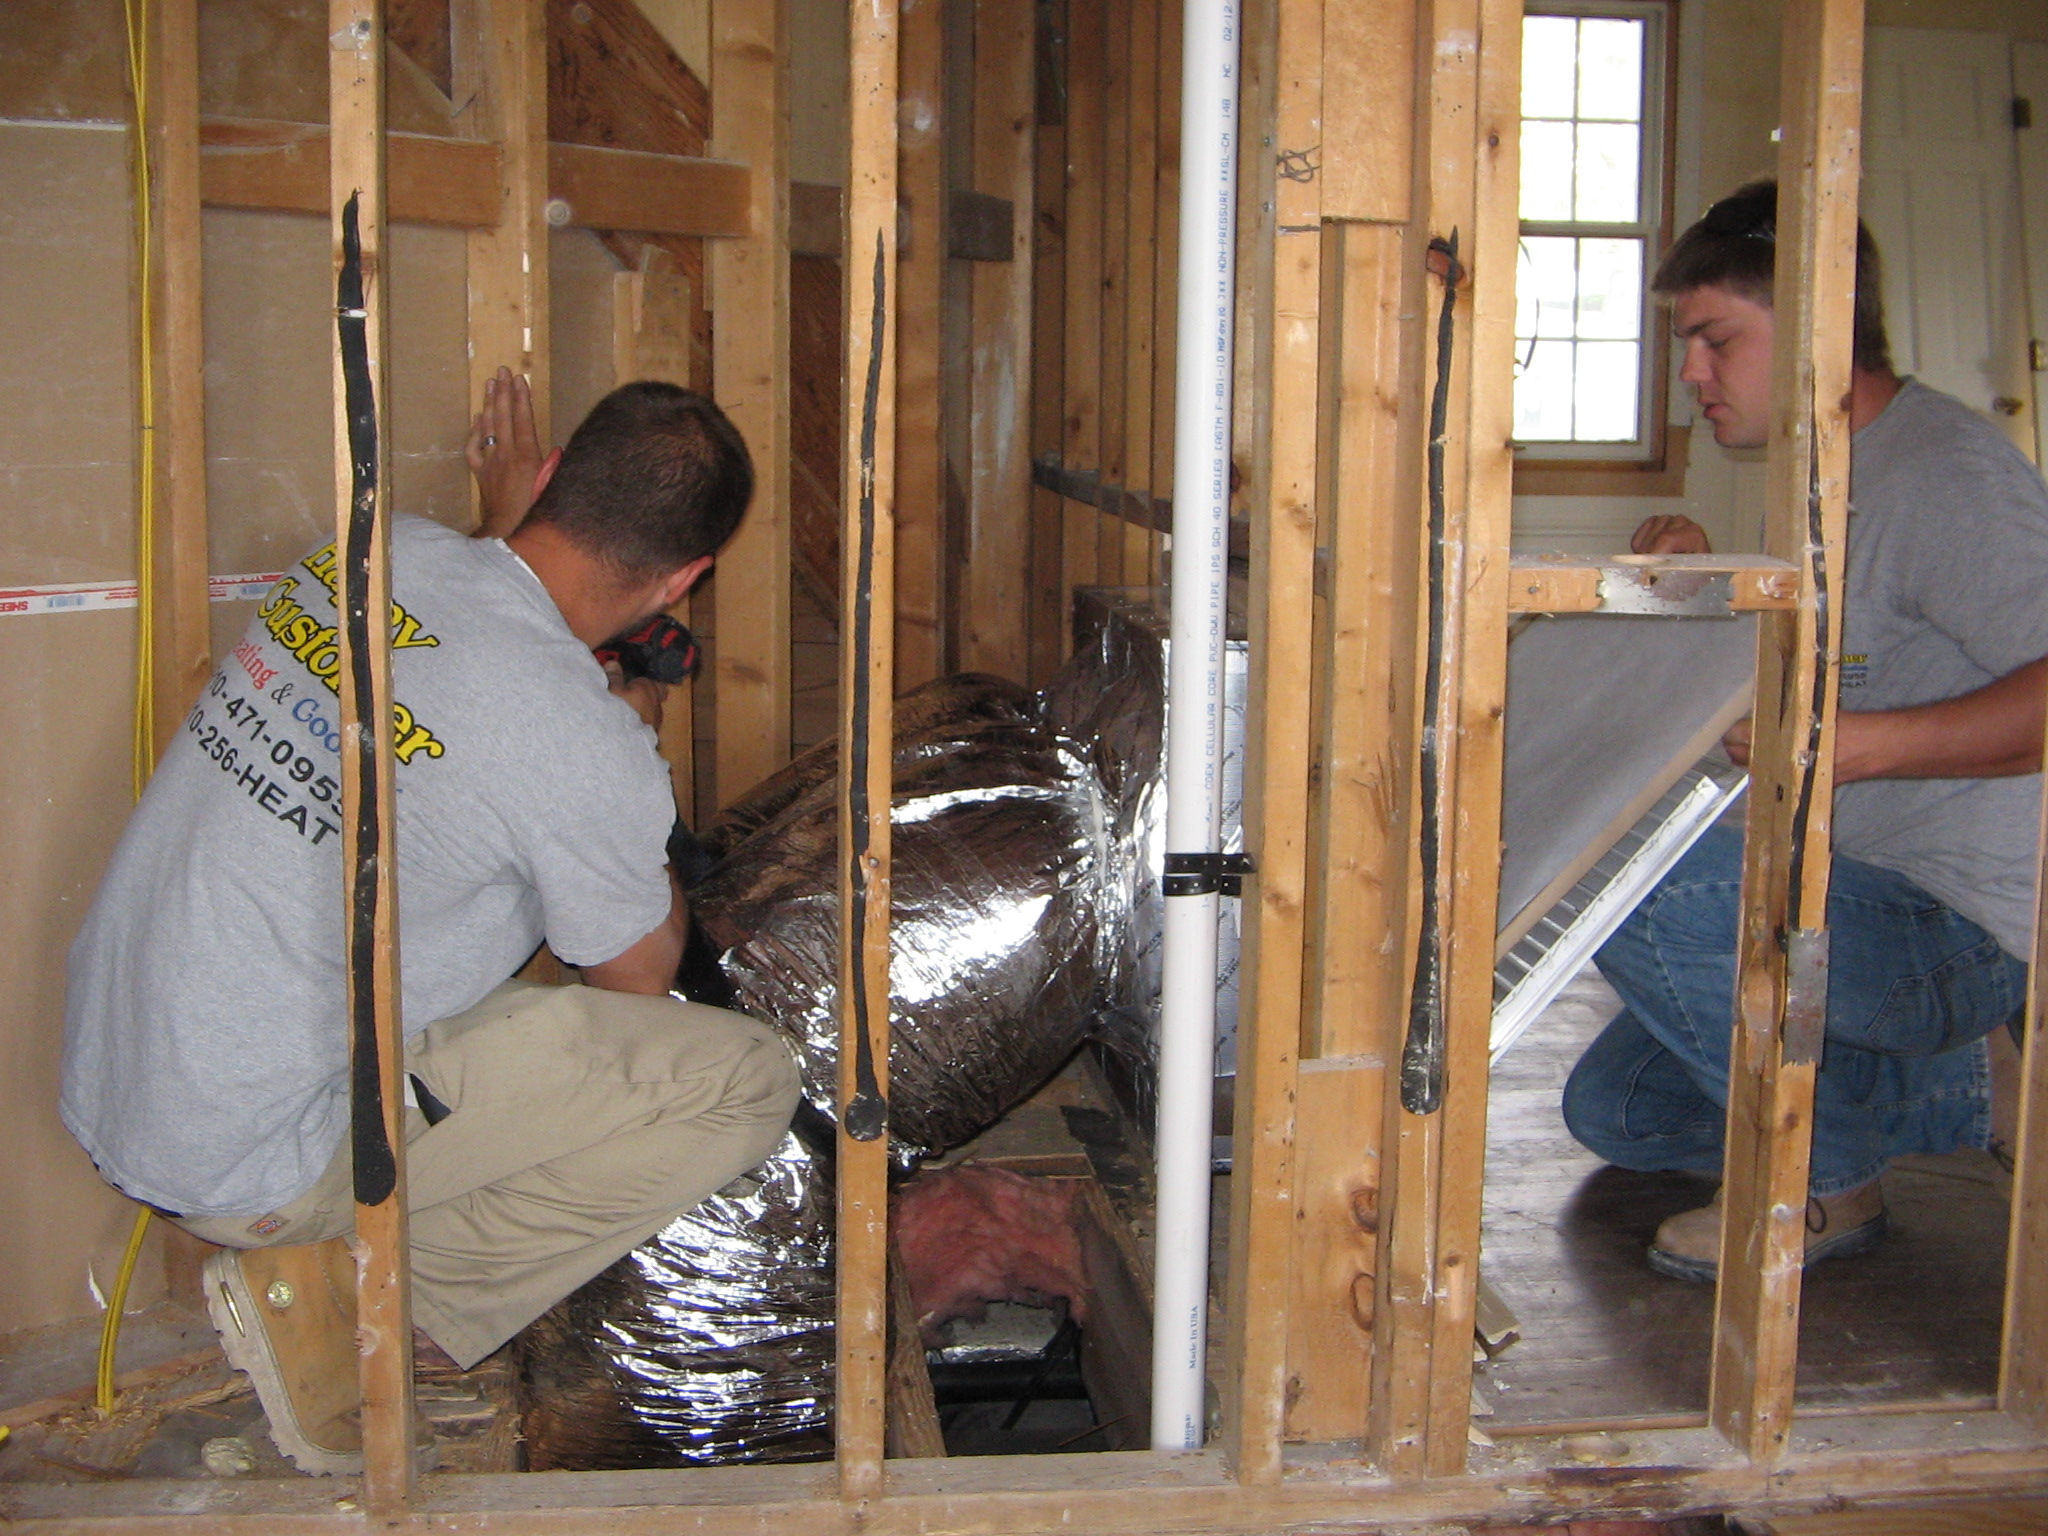 #9F692C HVAC Best 4463 Hvac Home Repair photos with 2048x1536 px on helpvideos.info - Air Conditioners, Air Coolers and more